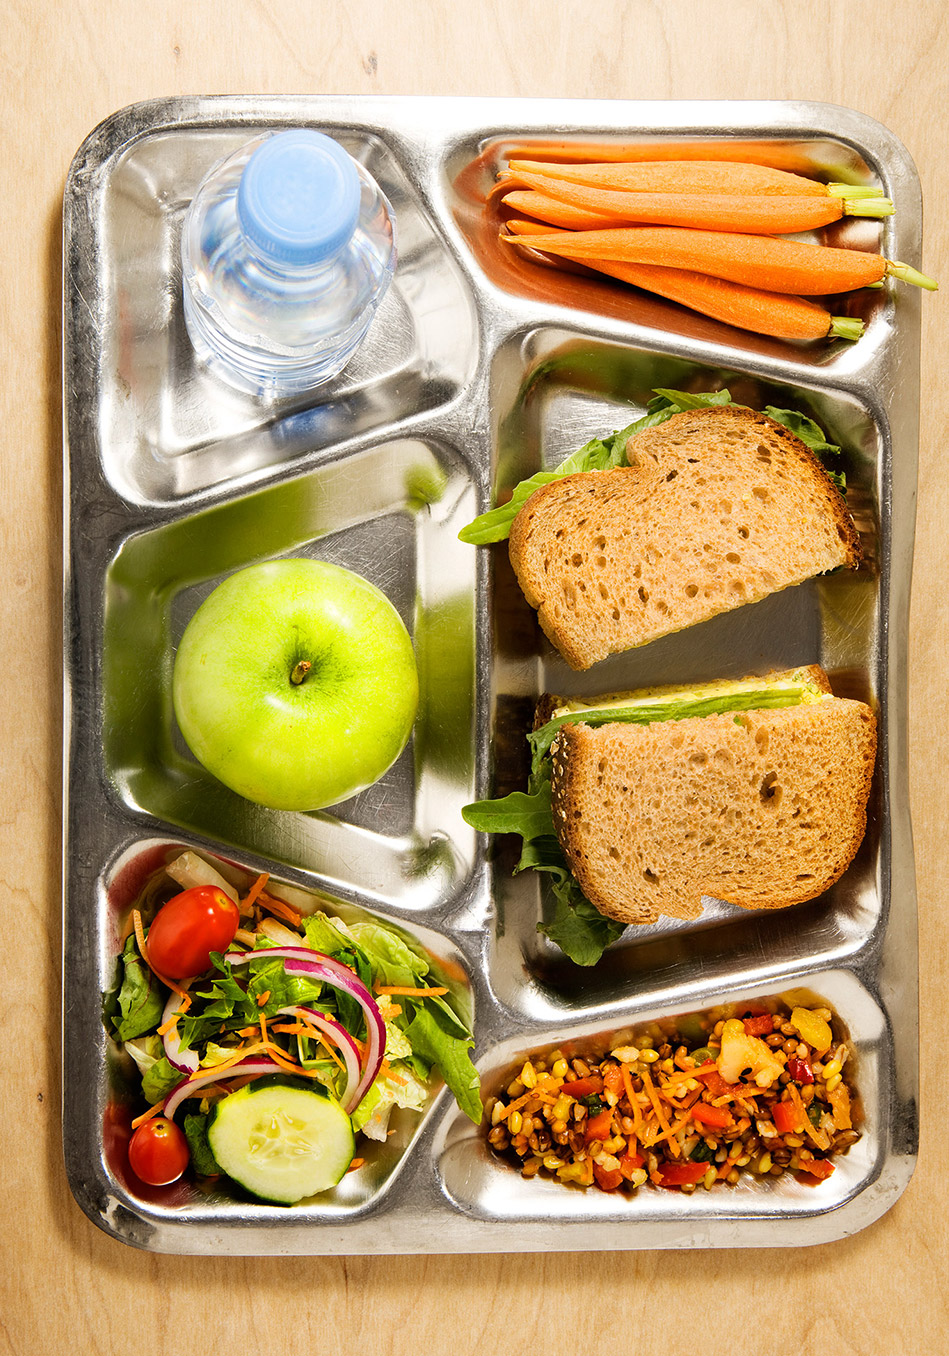 school lunches 5 essay Lets face it, we all hate school lunches most of the time they don't feed us enough food and it is very gross also, a lot of kids take a packed lunch which is okay, but it gets old taking a pb&j sandwich that sits in your locker for about four hours everyday for a year.